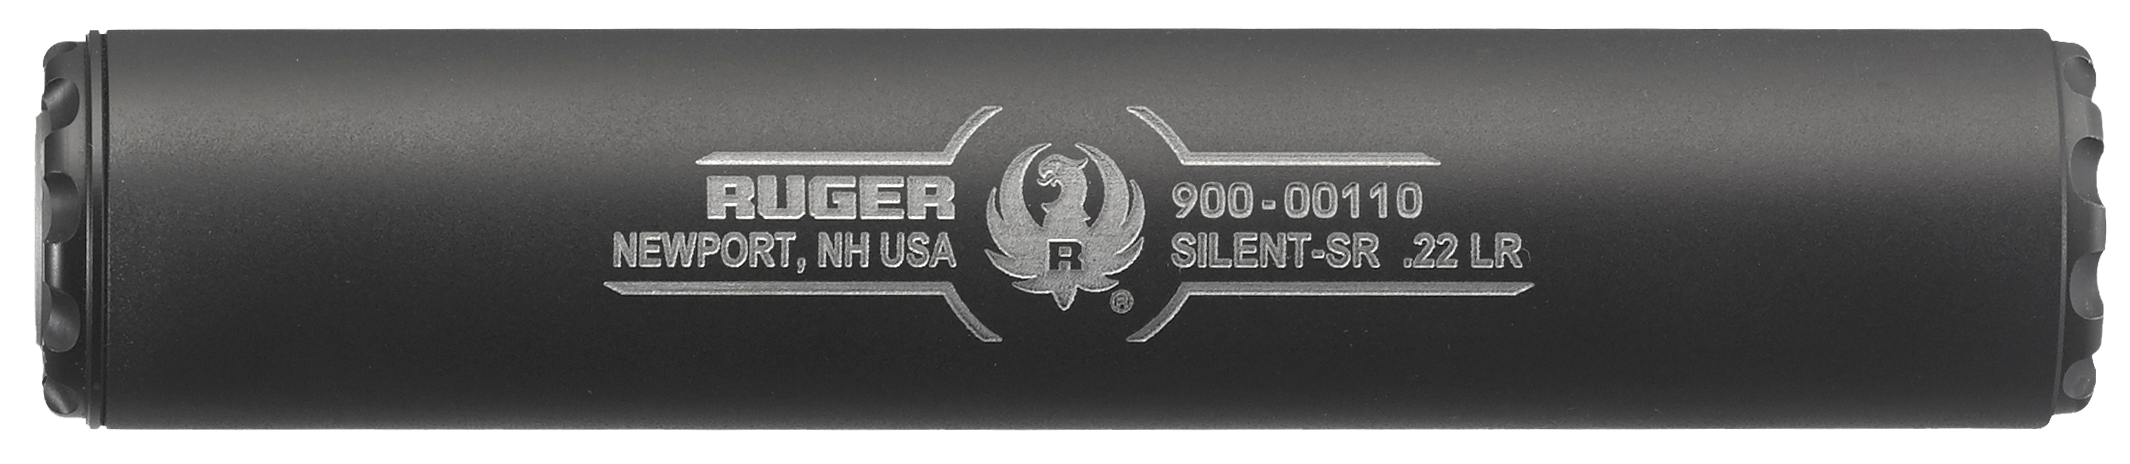 Ruger Silent-SR Rimfire Suppressor - 22 LR - 1/2x28 - Direct-Thread - Black Cerakote